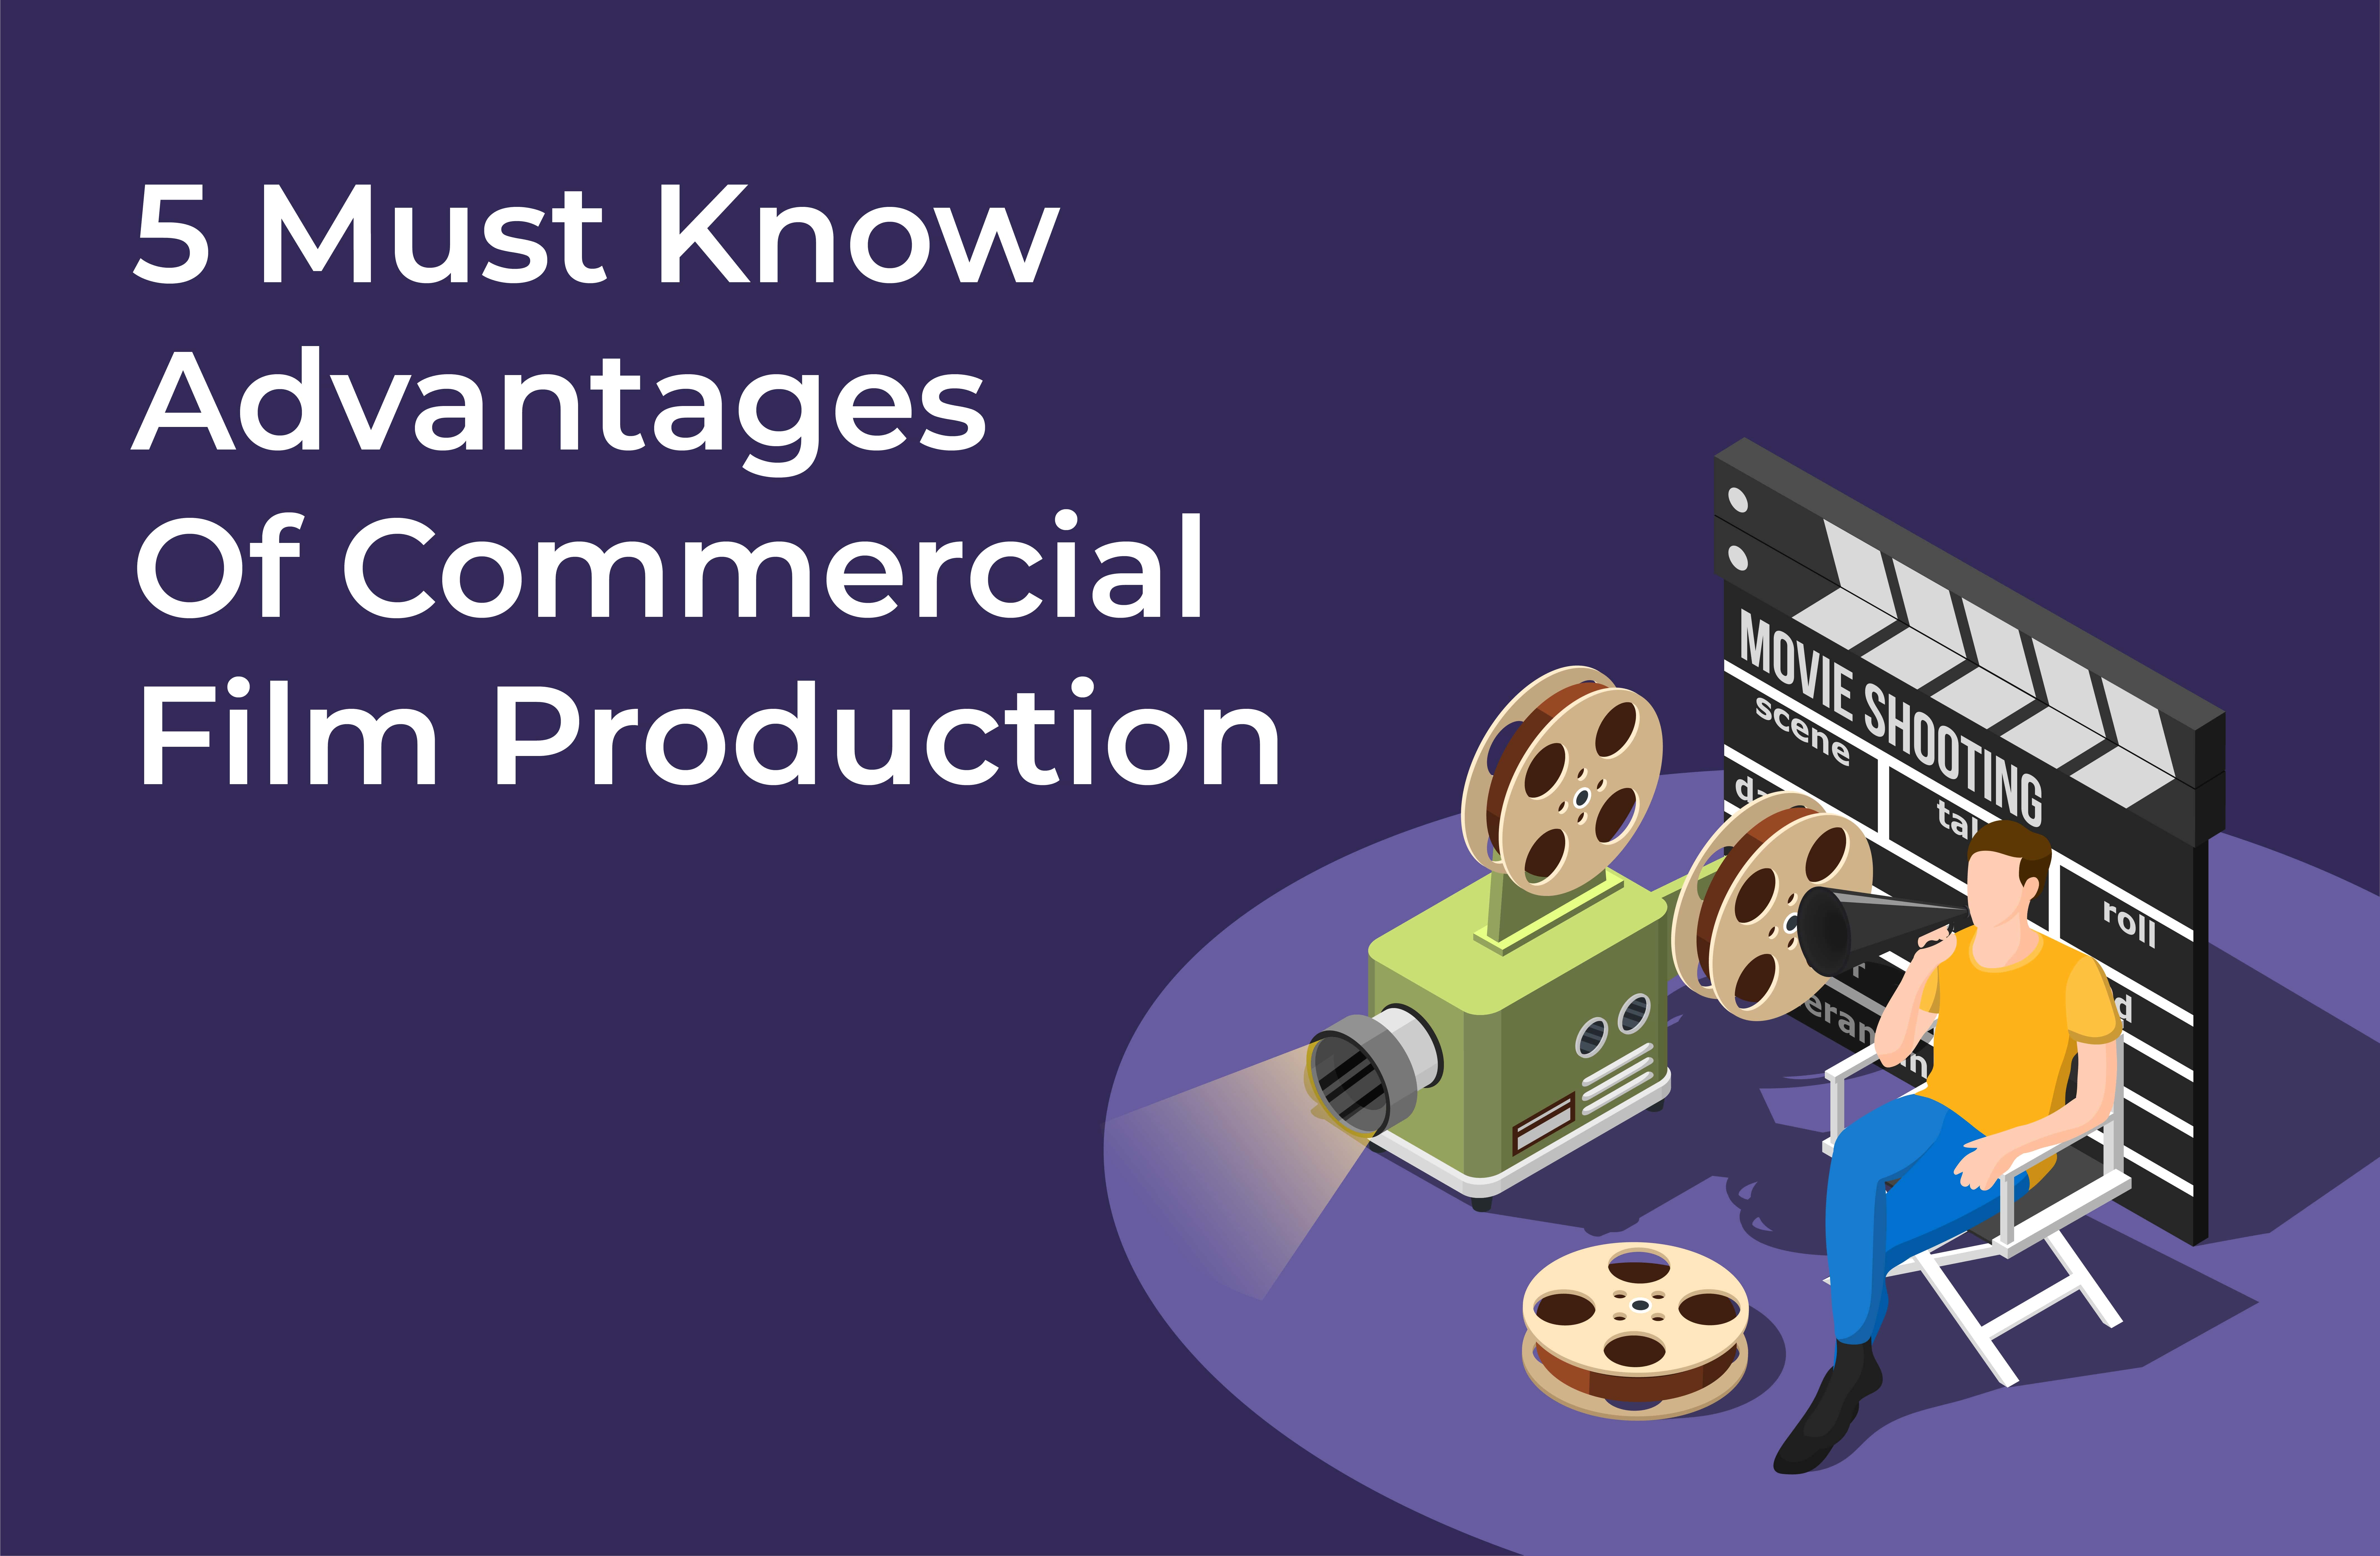 Benefits of Working on Commercial Film Production